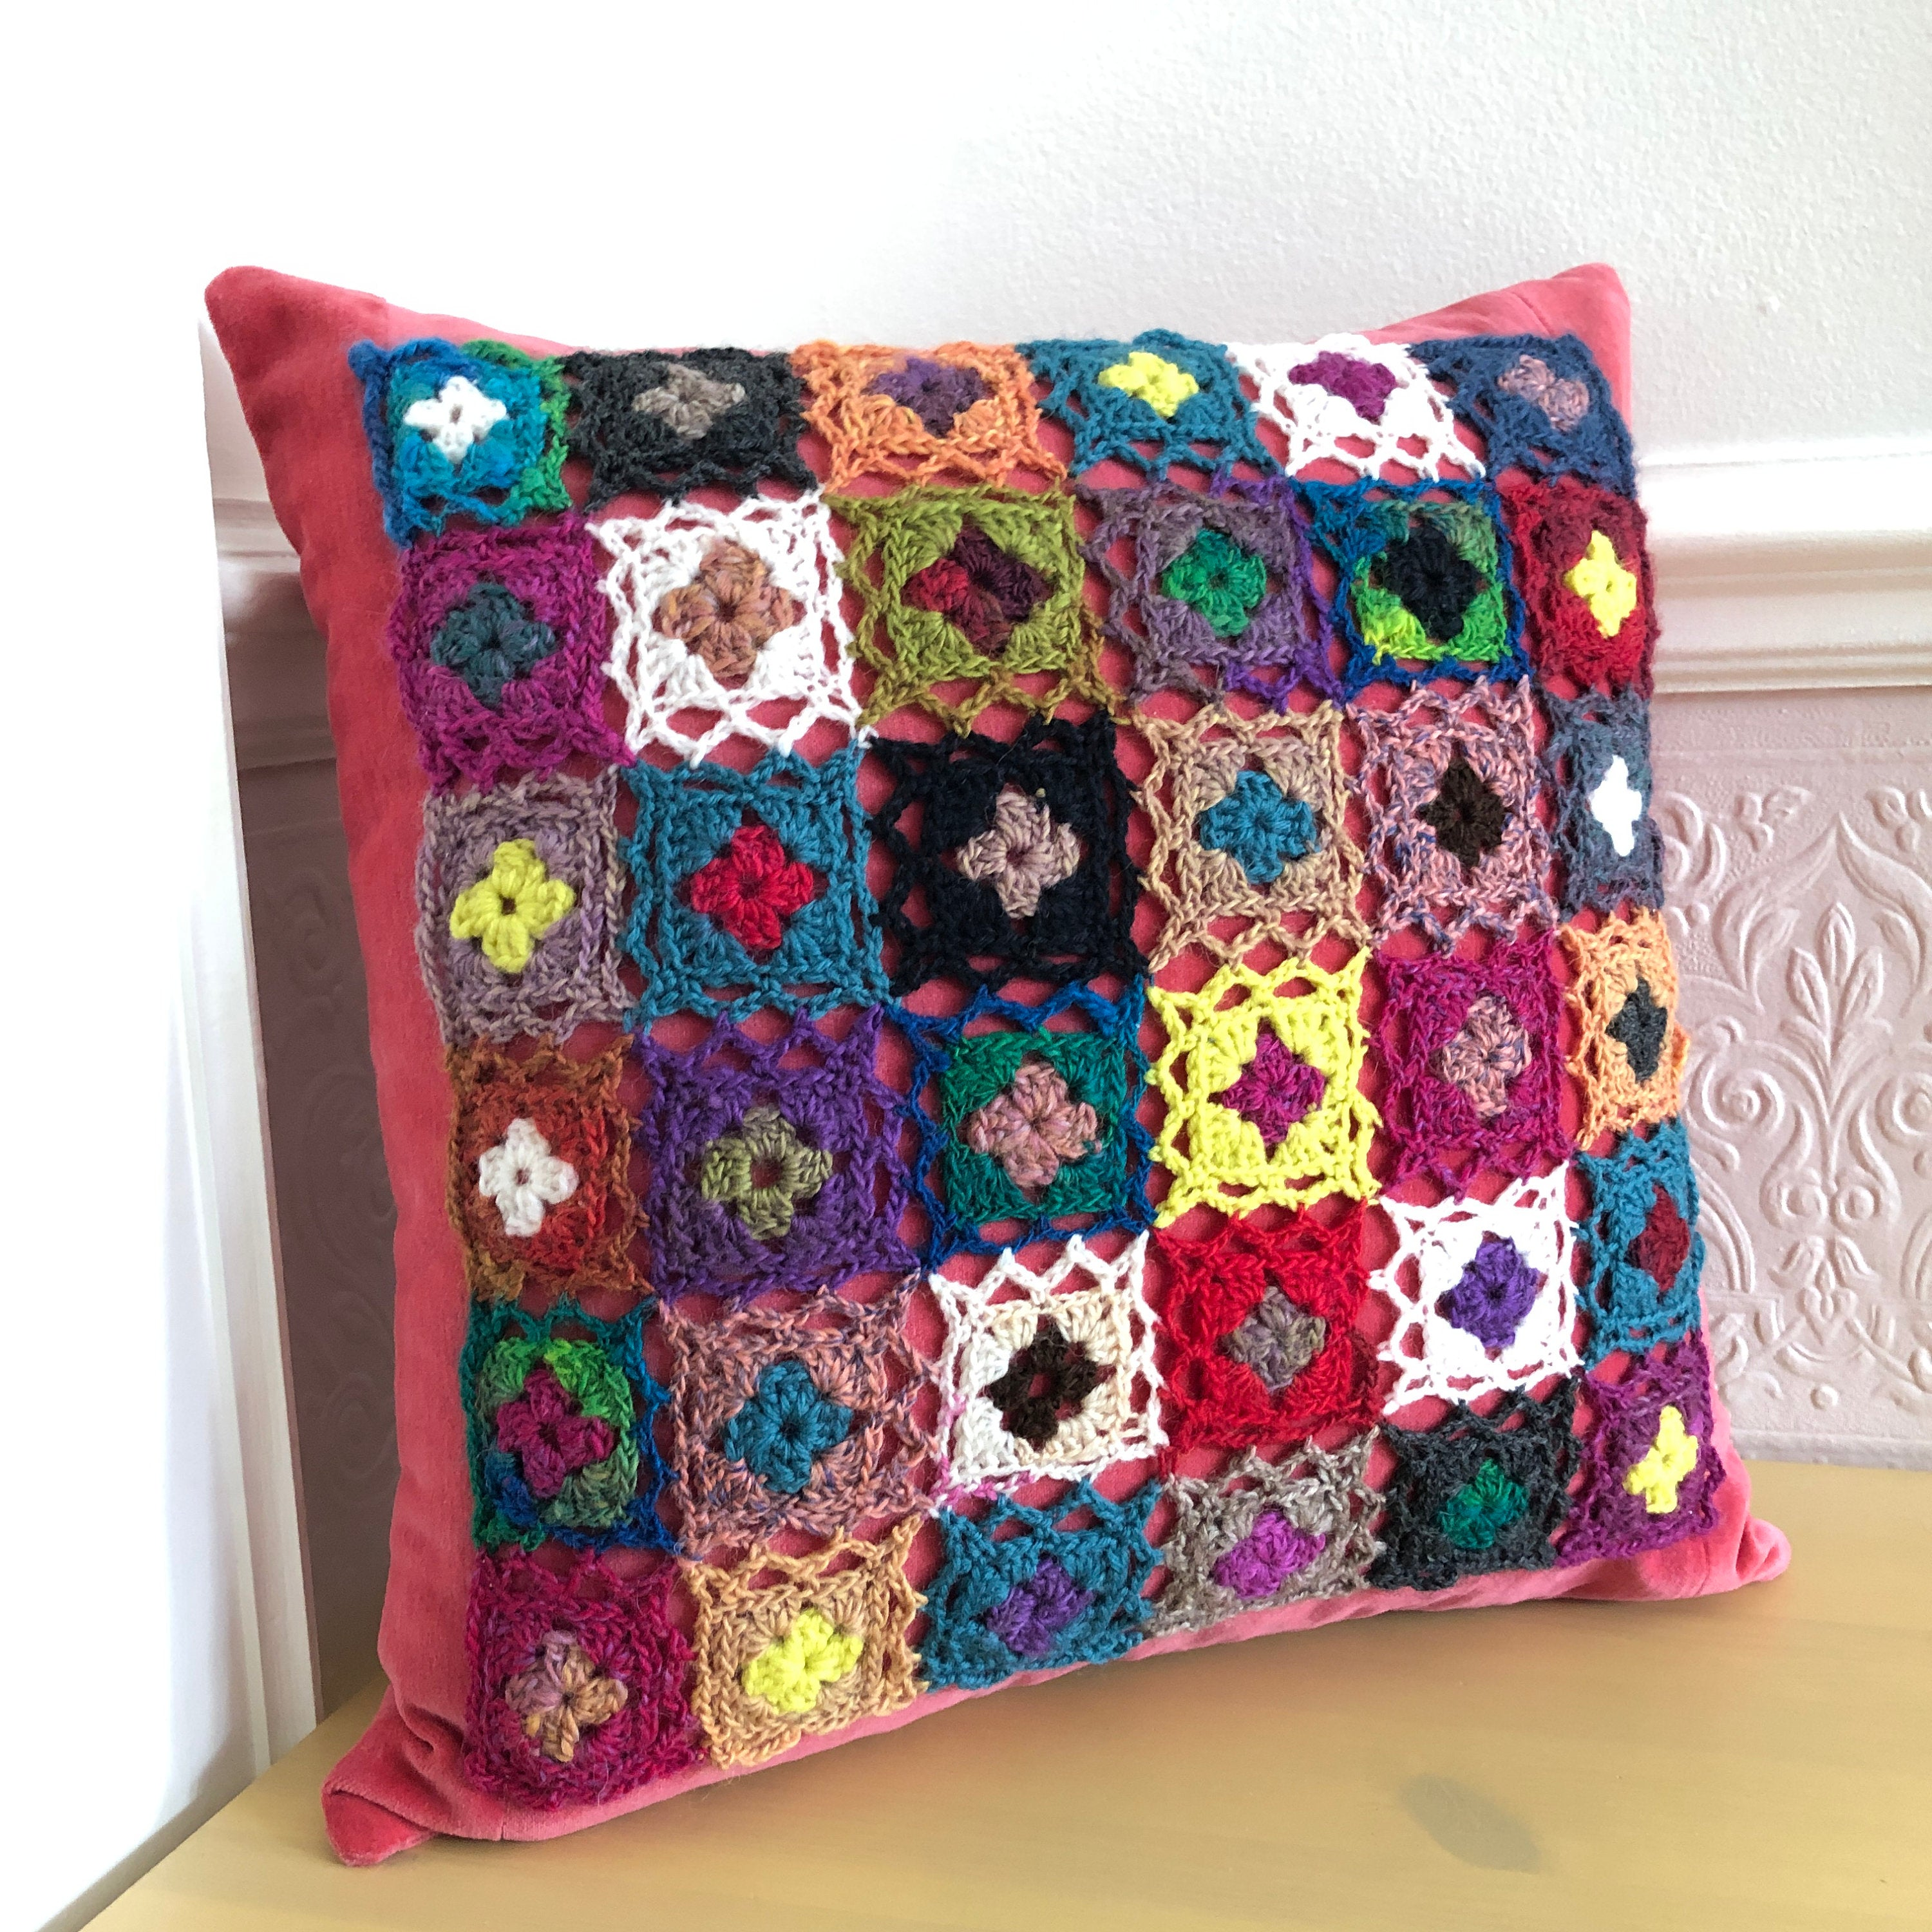 Pillow Cover with Crocheted Decor